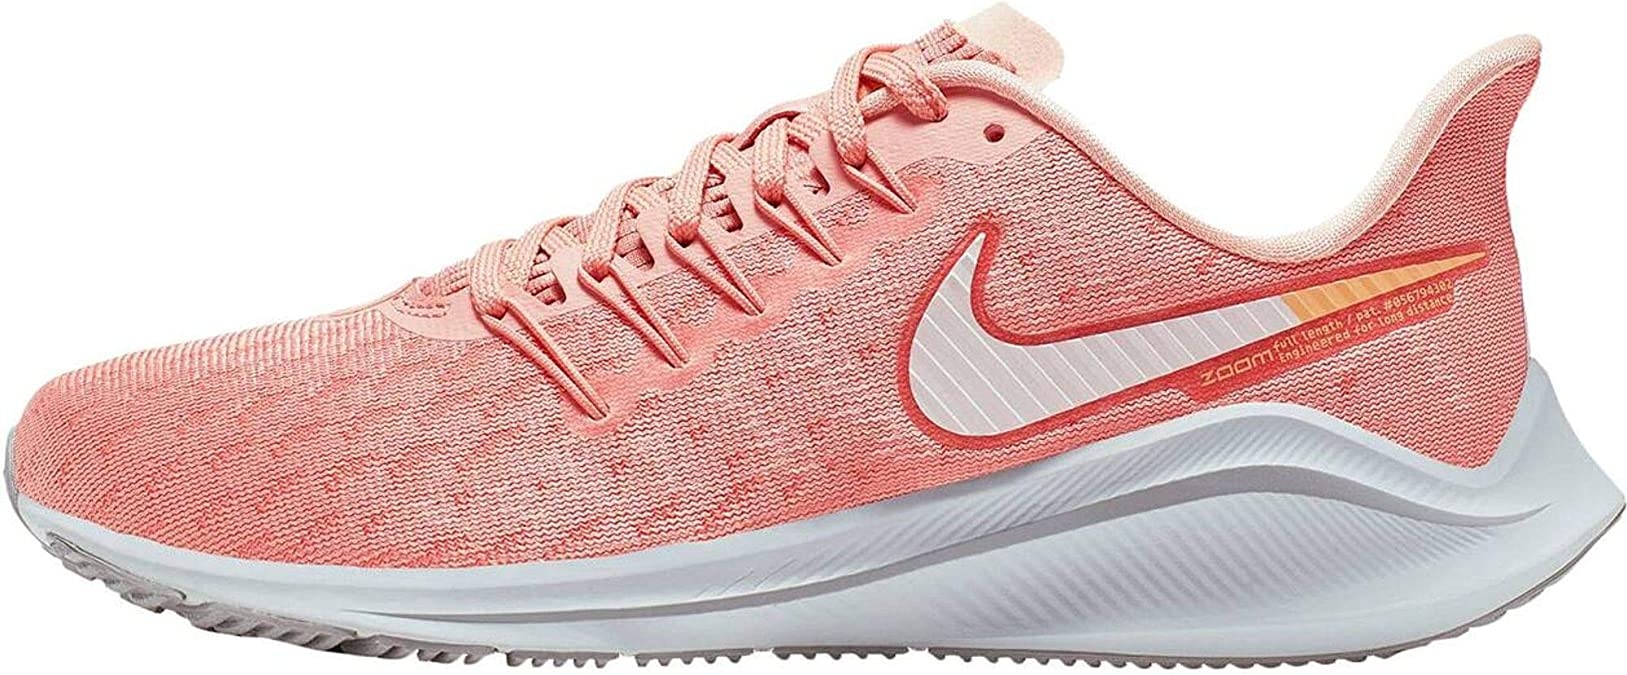 Nike Air Zoom Vomero 14, Zapatillas de Trail Running Mujer, Rosa Blanco, 42.5 EU: Amazon.es: Zapatos y complementos